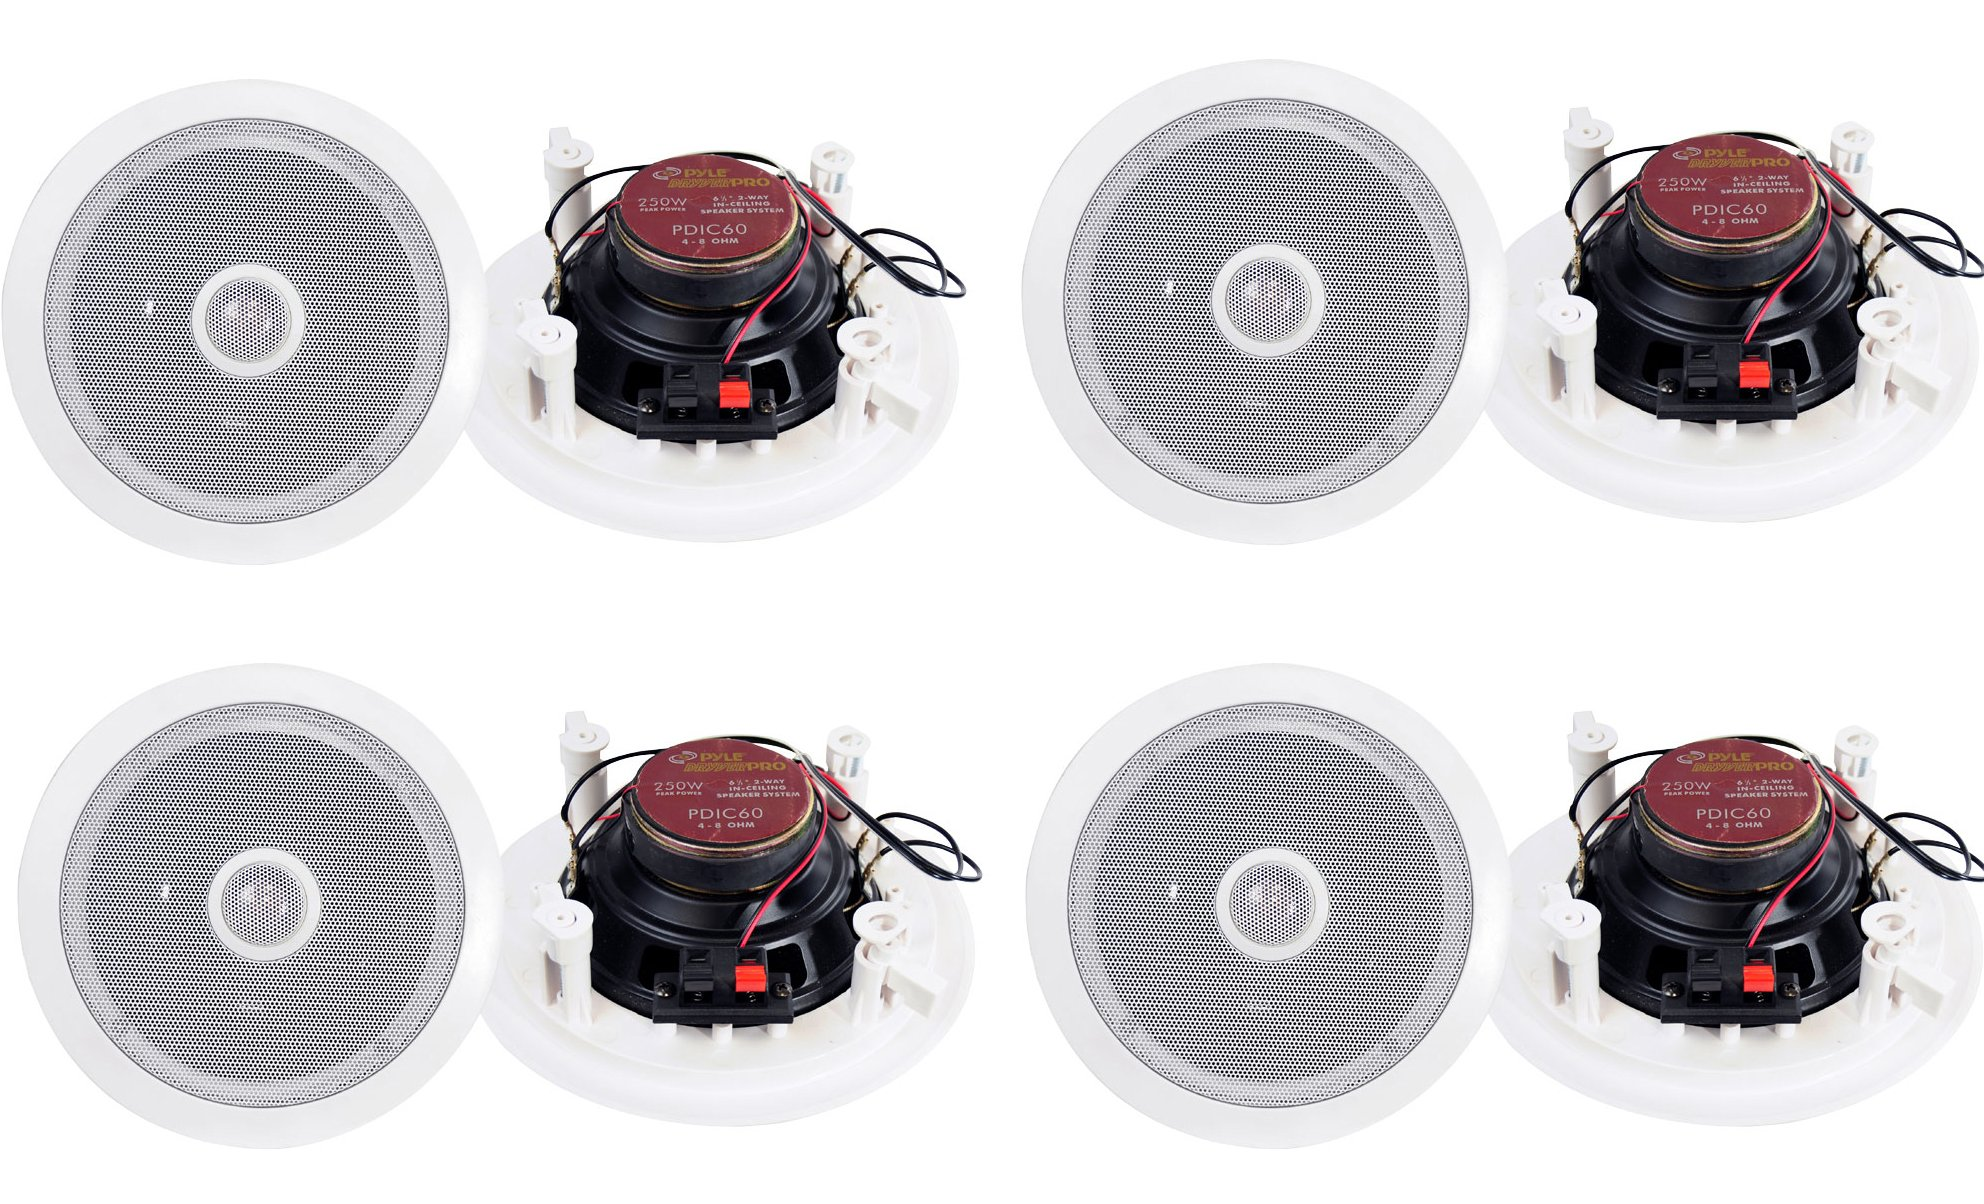 8) Pyle PDIC60 6.5'' 250W 2 Way Round In Wall/Ceiling Home Speakers System Audio